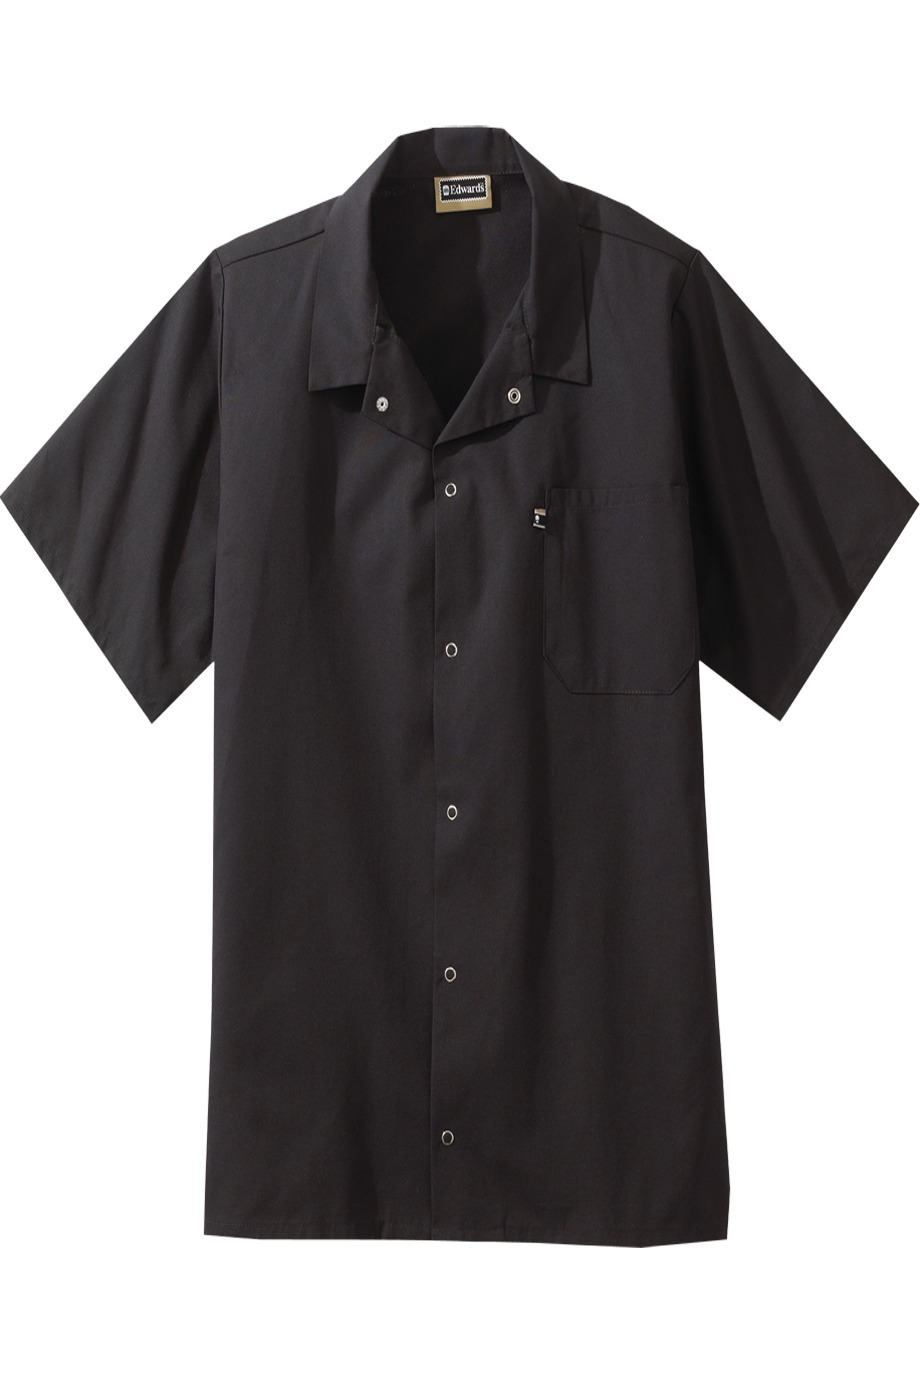 Edwards Garment 1302 - Snap Front Utility Shirt